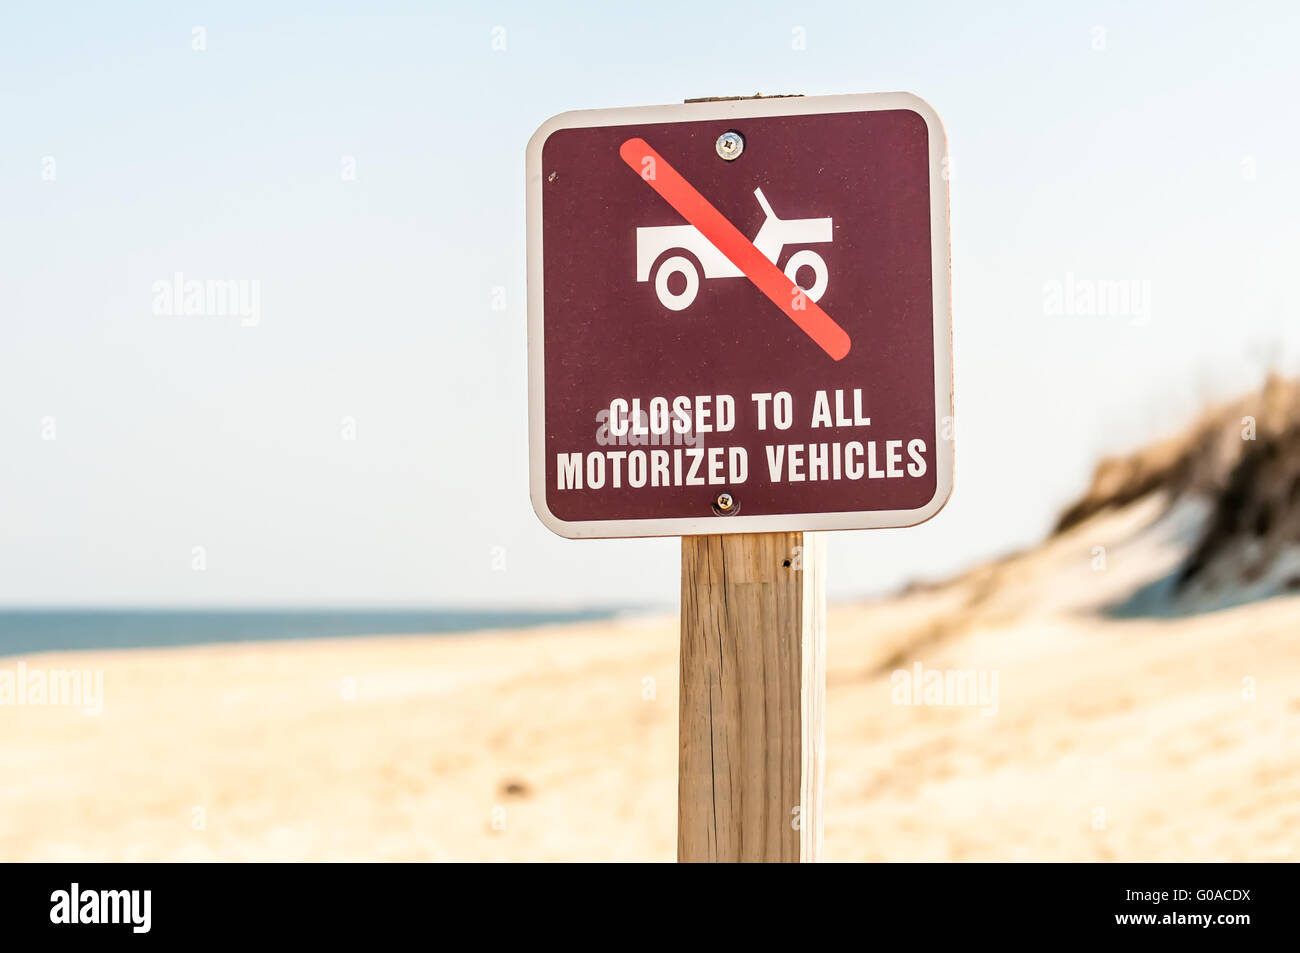 closed to all motorized vehicles on beach sign - Stock Image